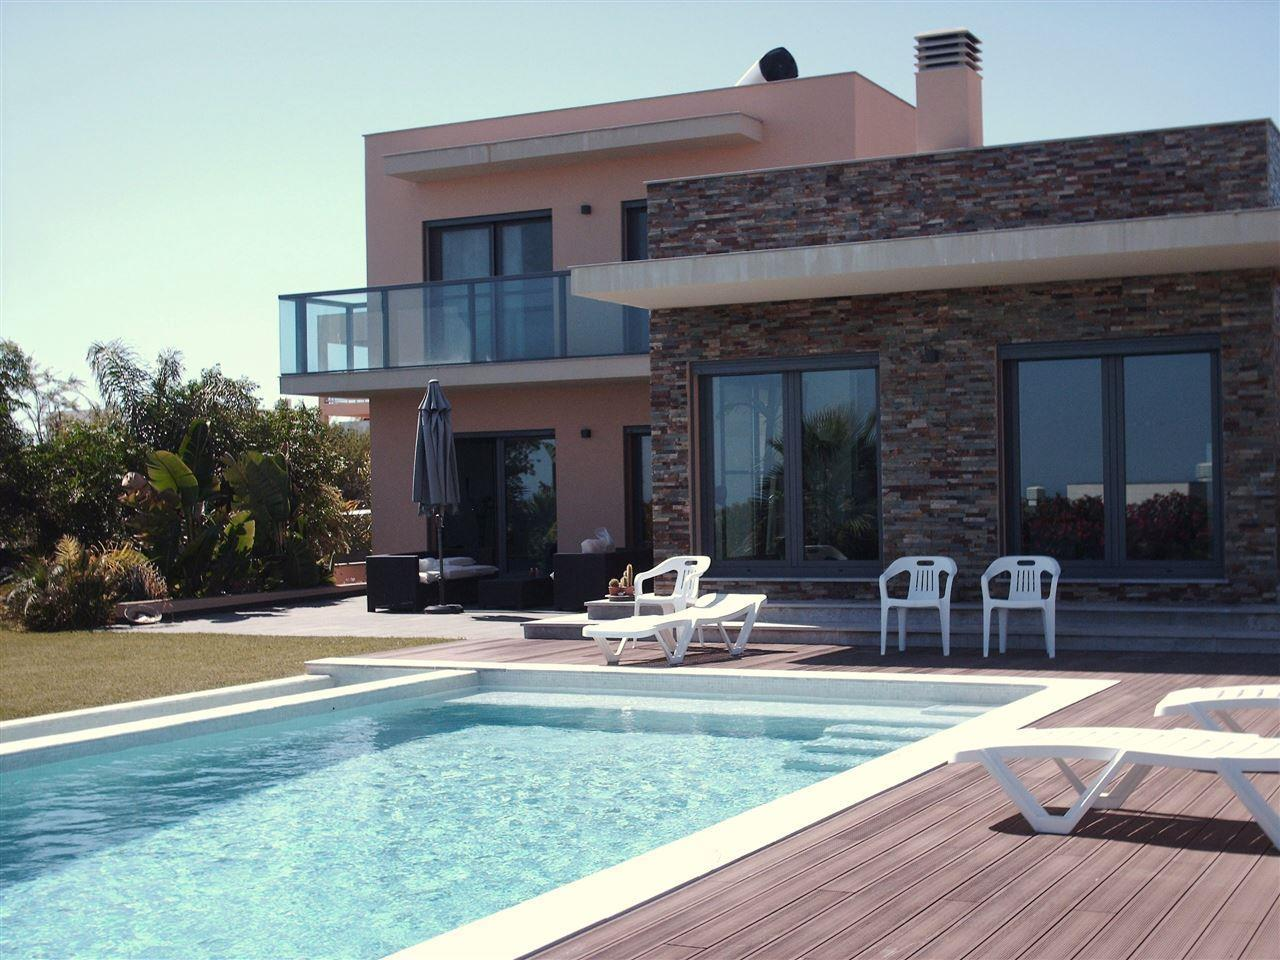 Single Family Home for Sale at Detached house, 4 bedrooms, for Sale Silves, Algarve Portugal